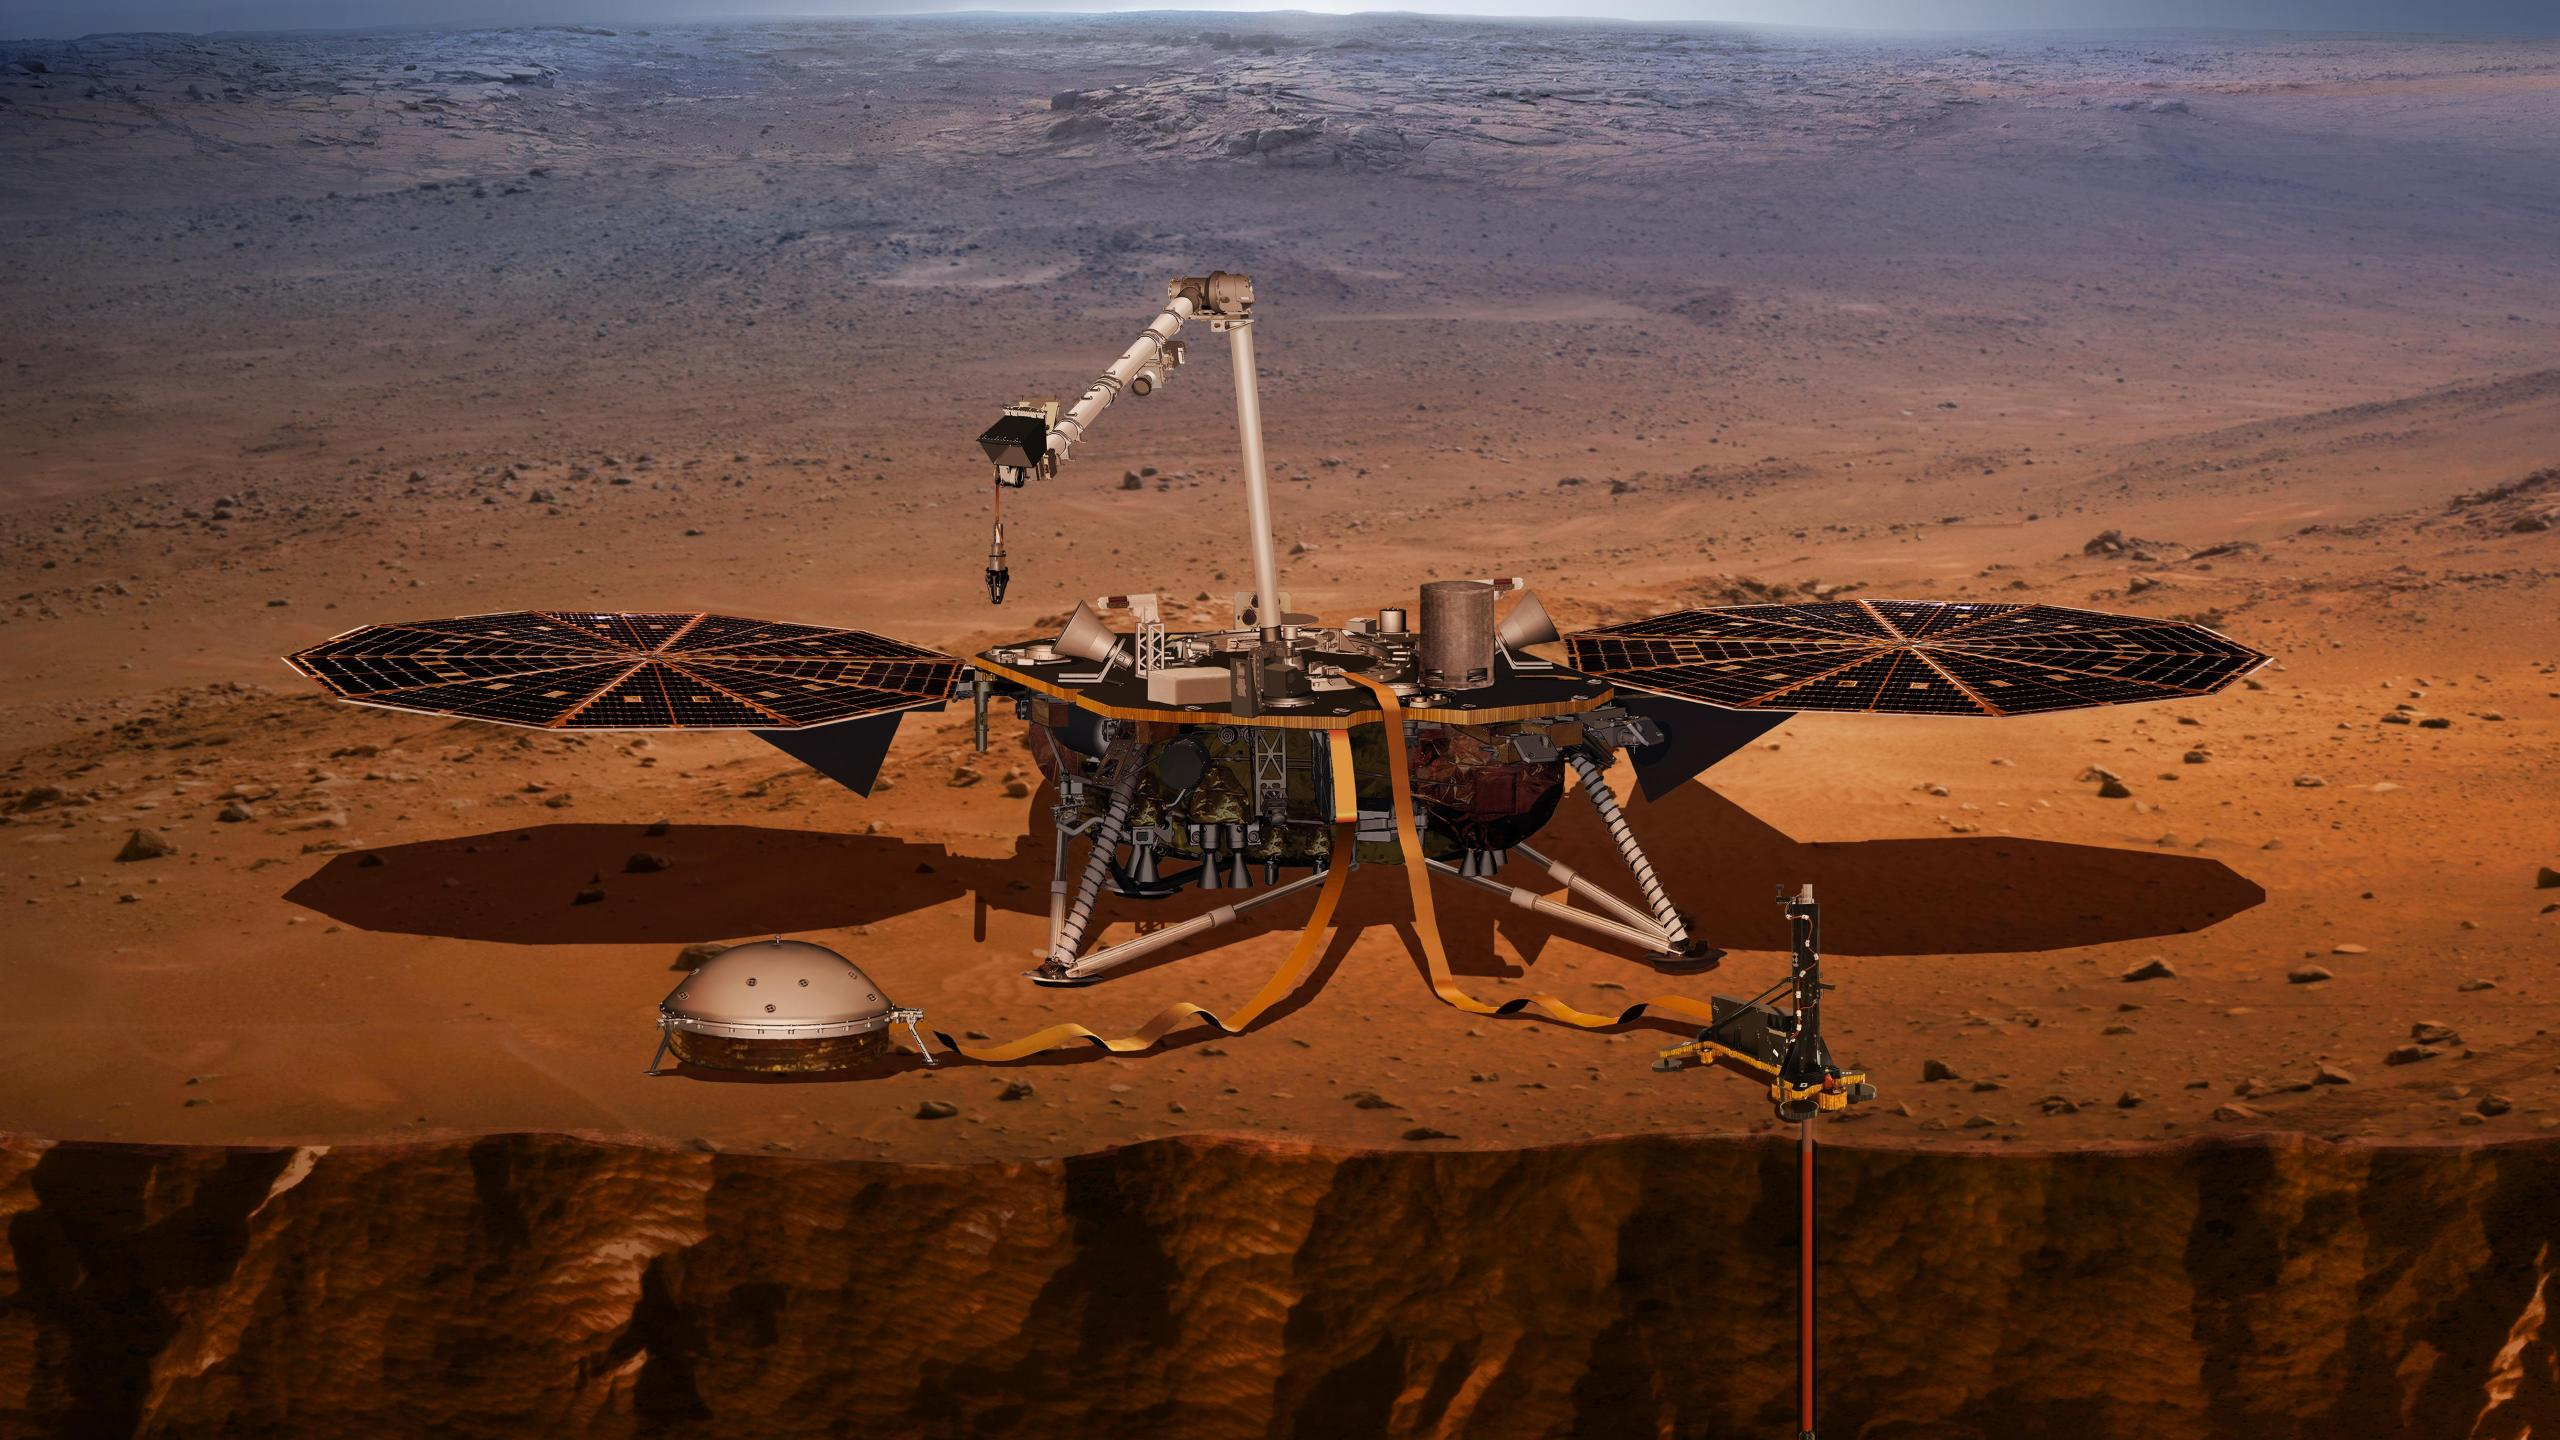 An artist's rendering shows the InSight Mars rover. (Credit: NASA's Jet Propulsion Laboratory)